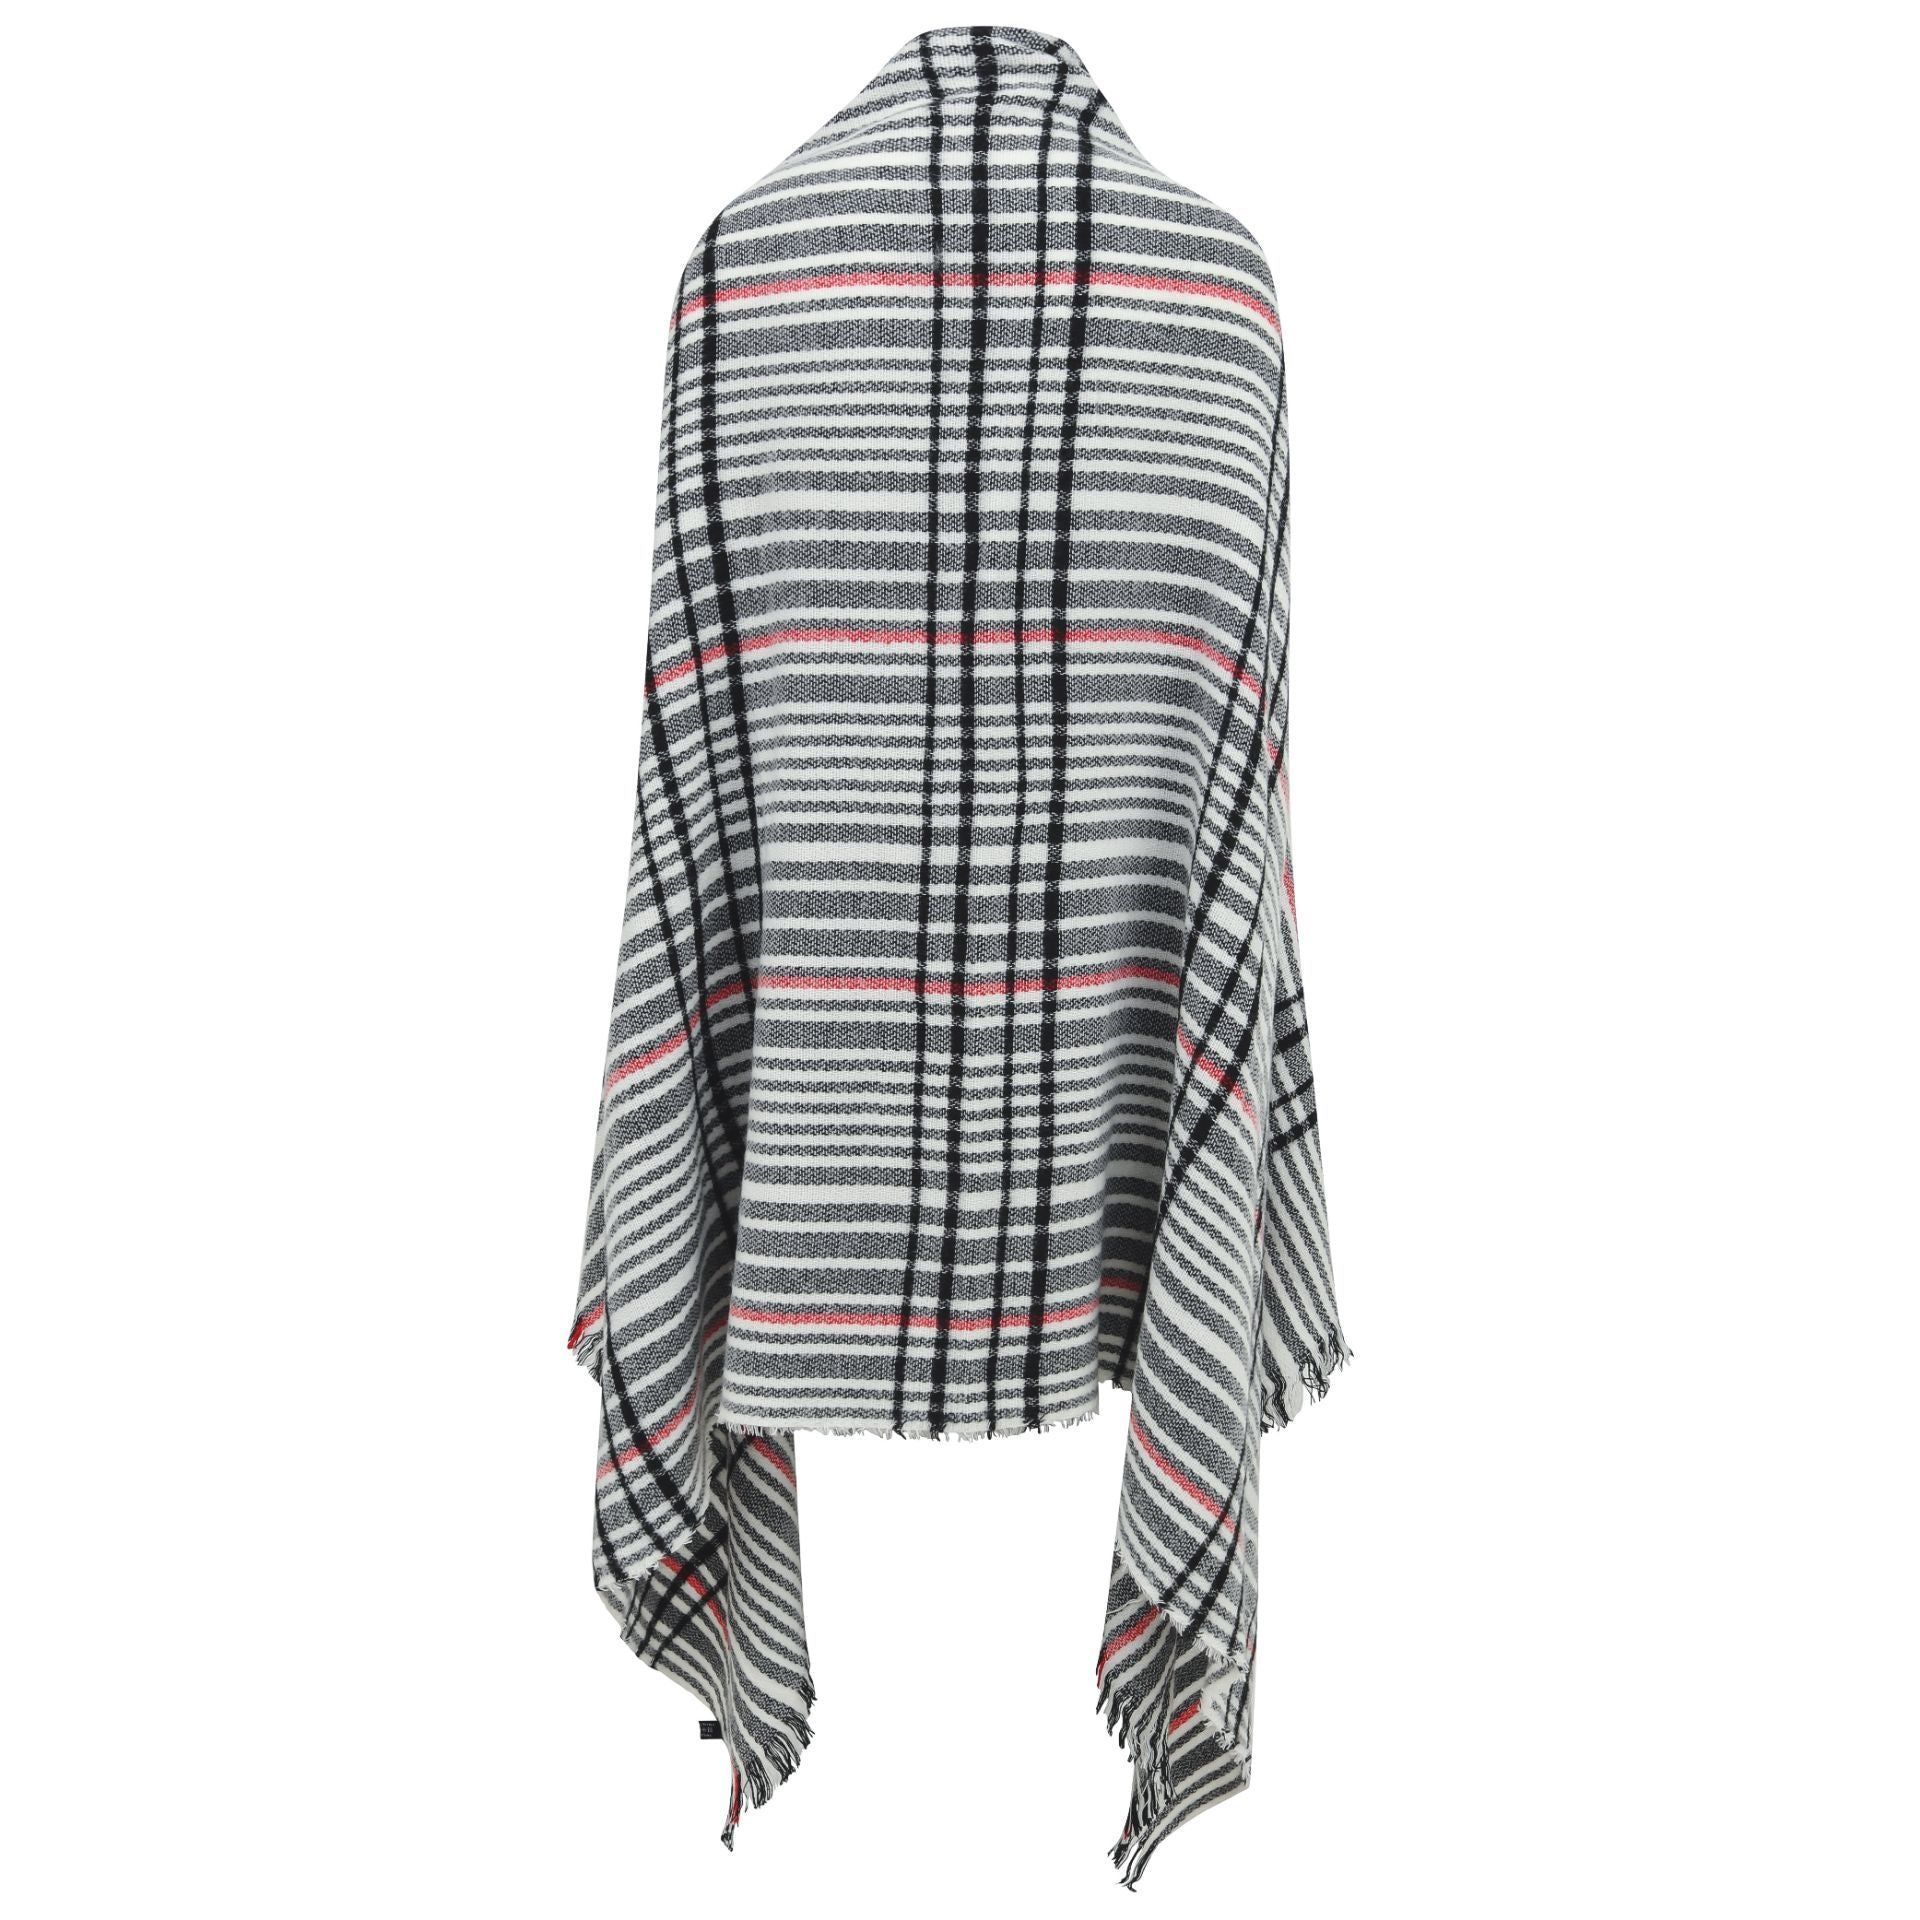 Alabama Scarf - grey with black & red line check